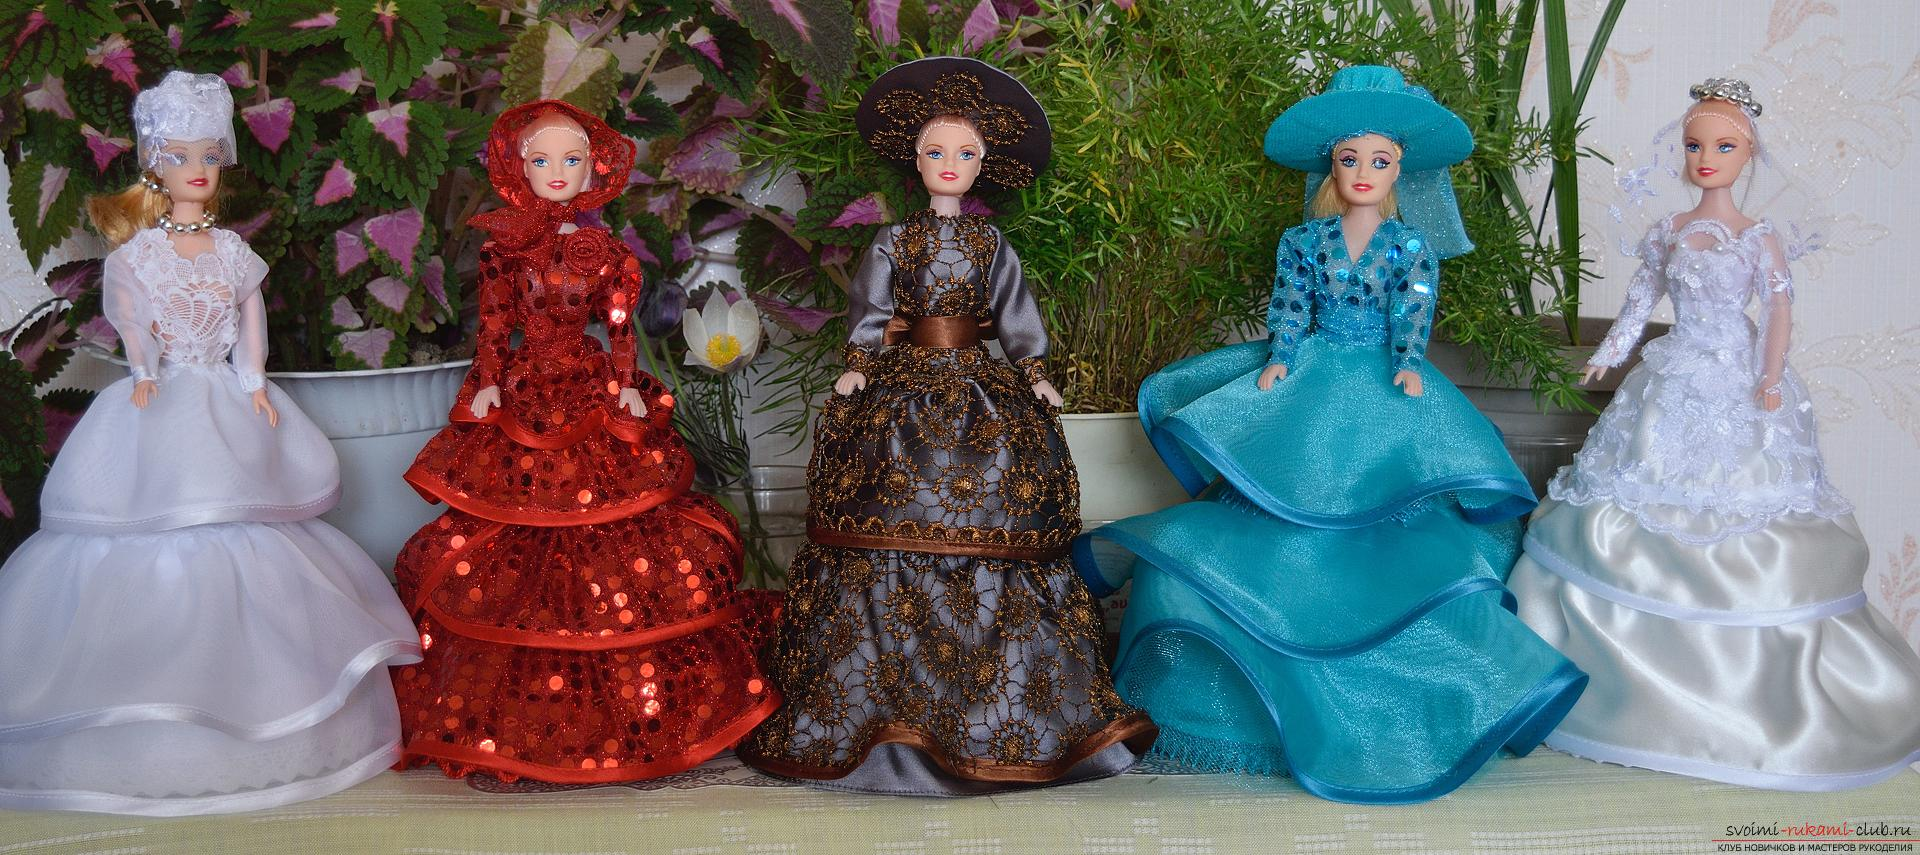 Dolls and household. Photo №5